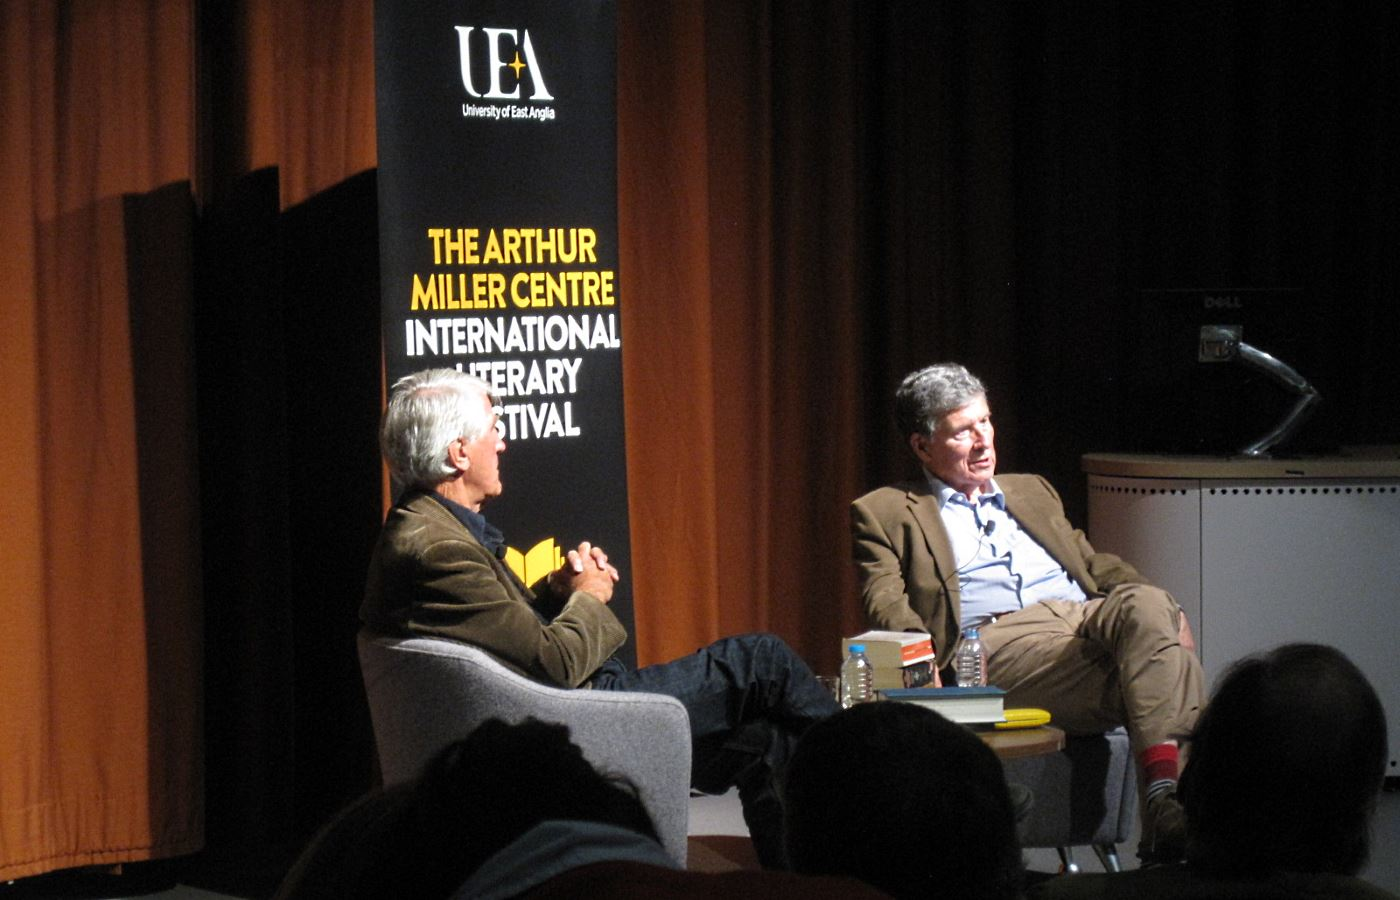 Christopher Andrew at UEA Literary Festival